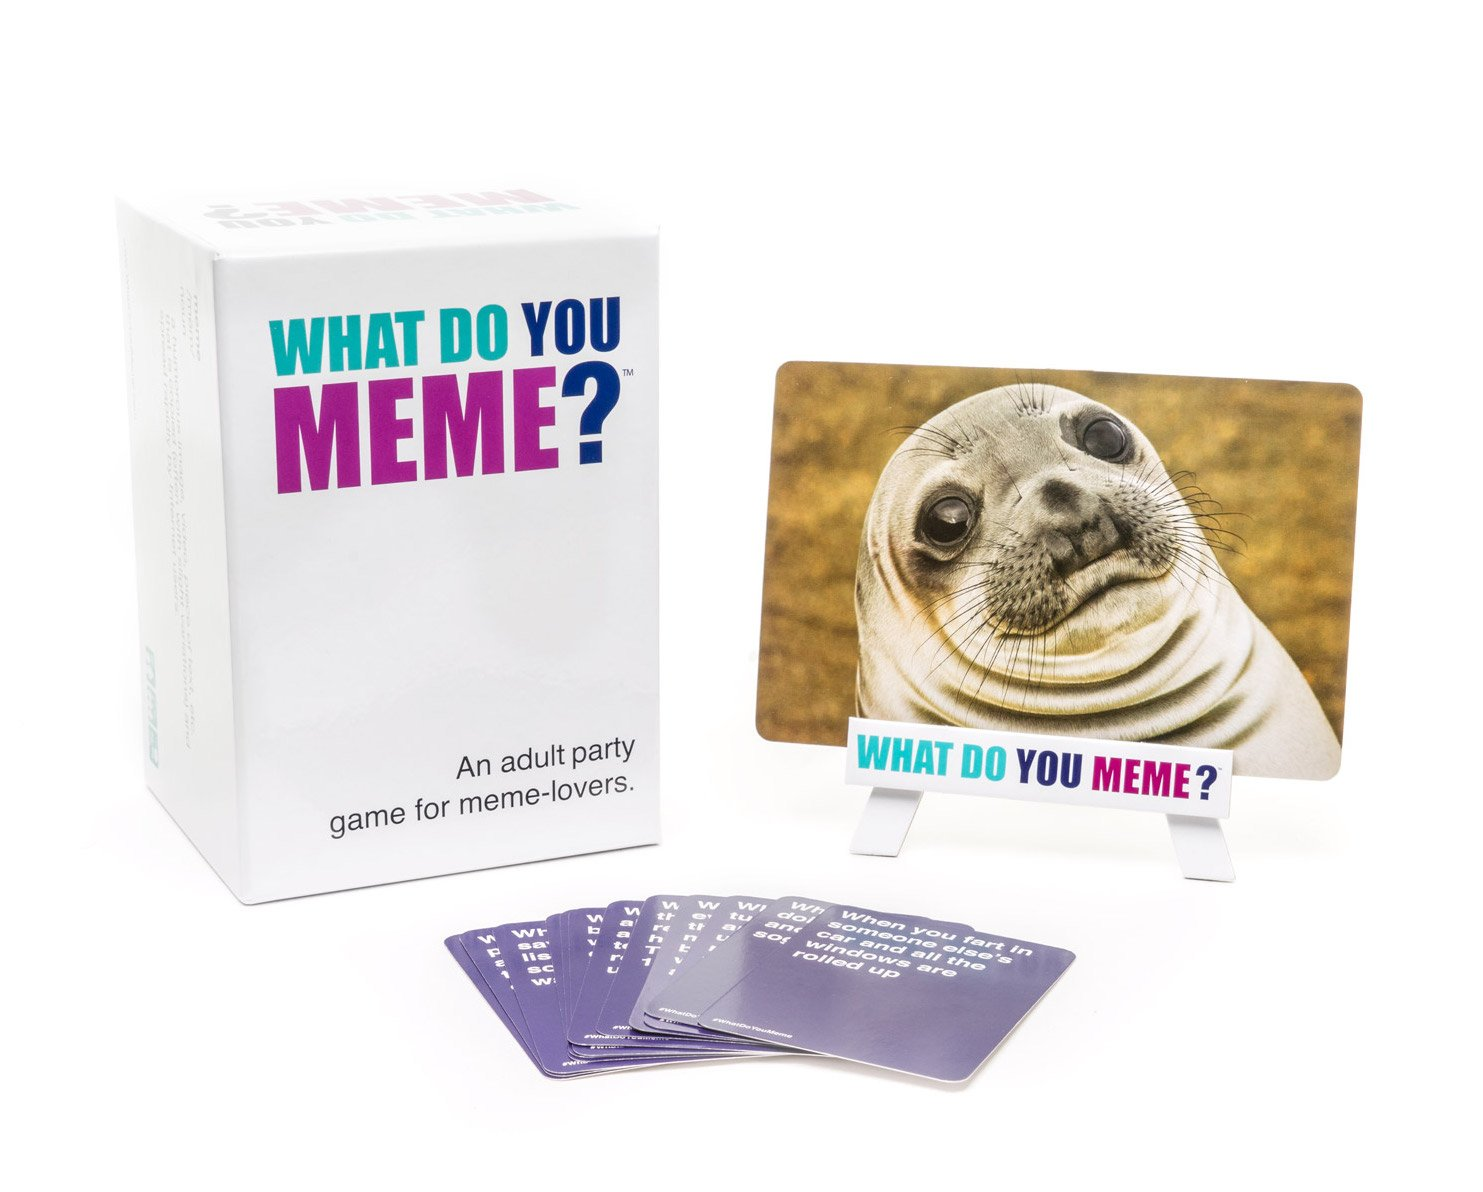 71lMhYvrjiL._SL1483_ what do you meme? adult party game, card games amazon canada